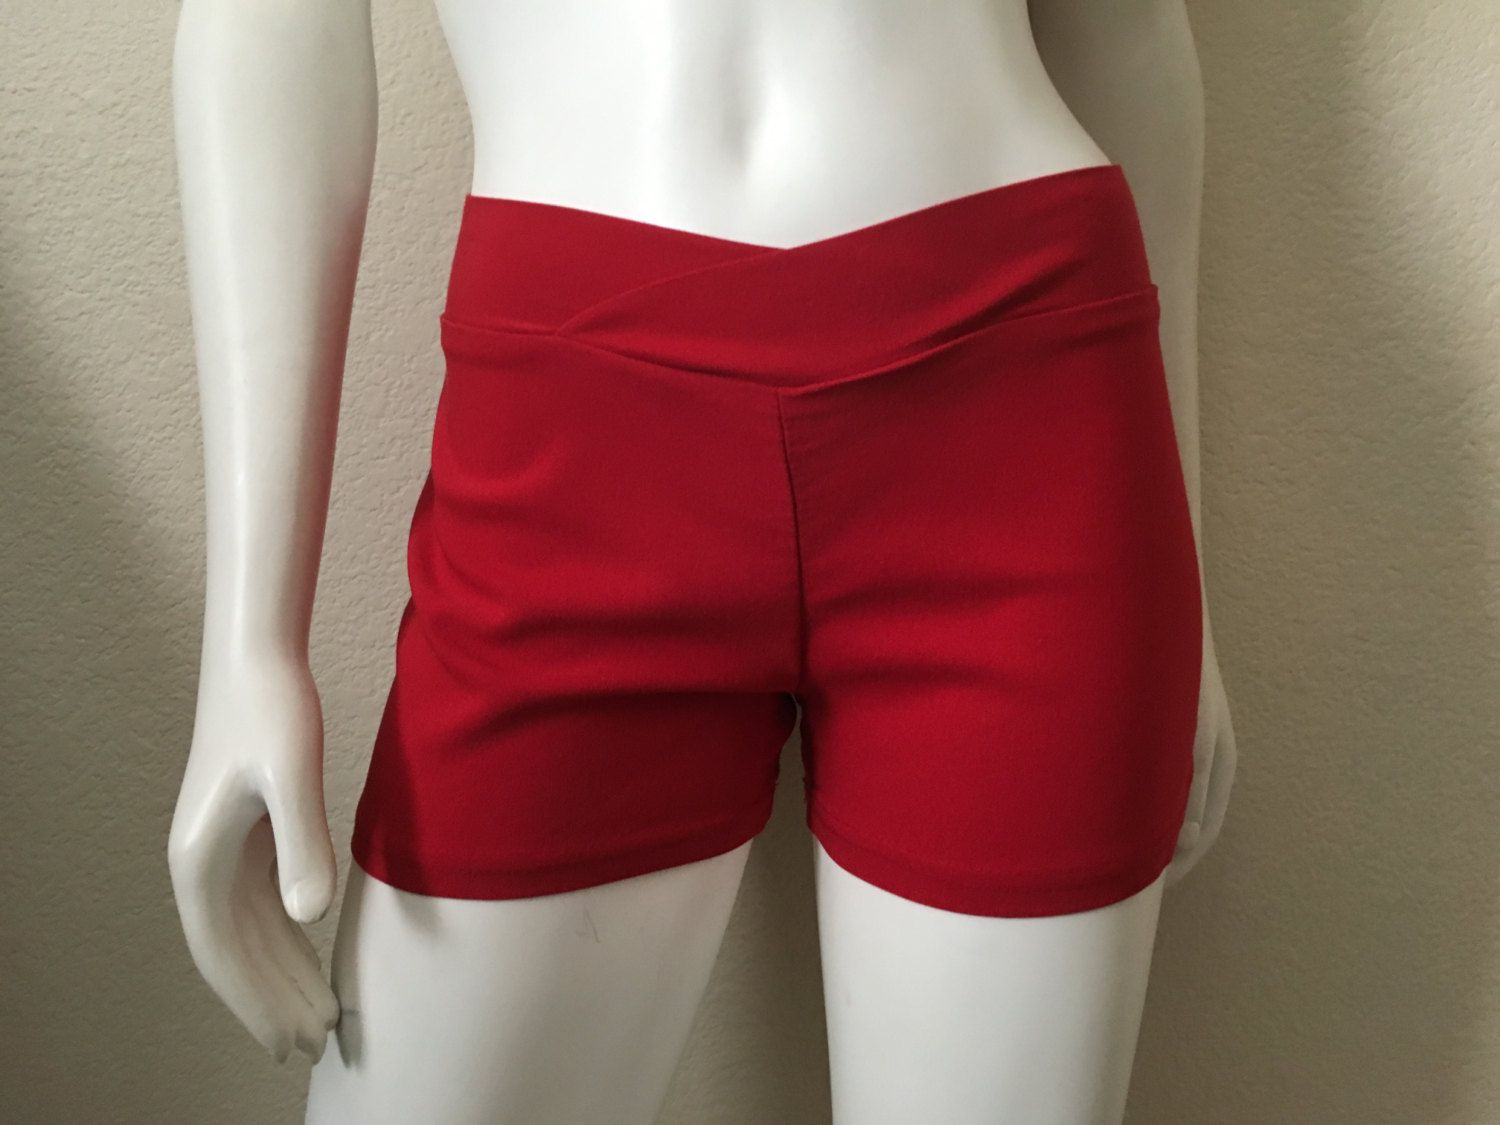 Vintage Women's 90's Red Shorts, Low Rise by Venus (S/M) by Freshandswanky on Etsy